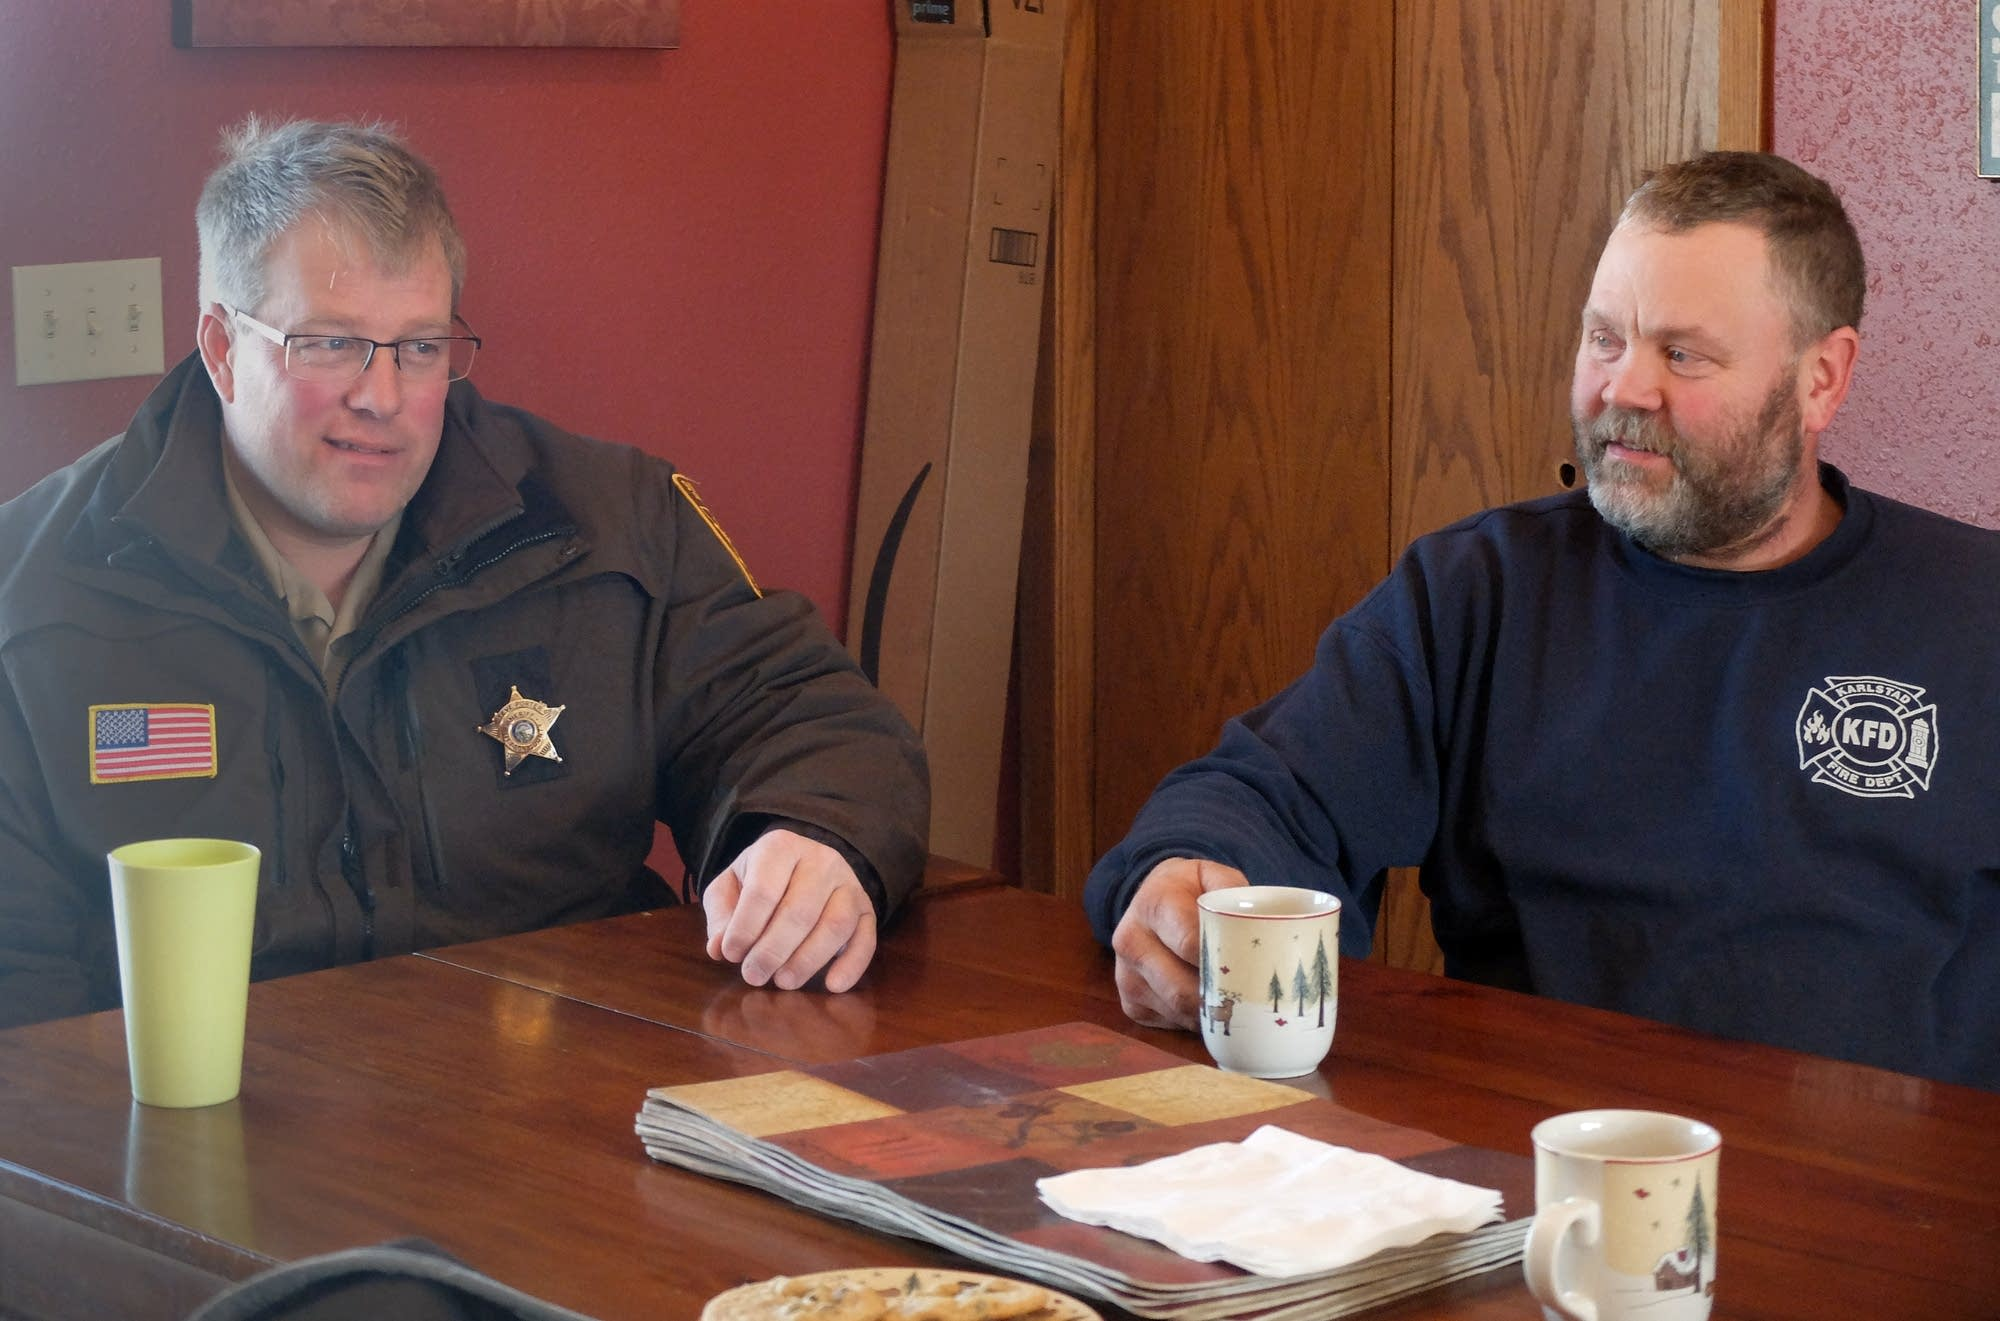 Kittson County Sheriff Steve Porter and rancher Steve Klopp discuss wolves.